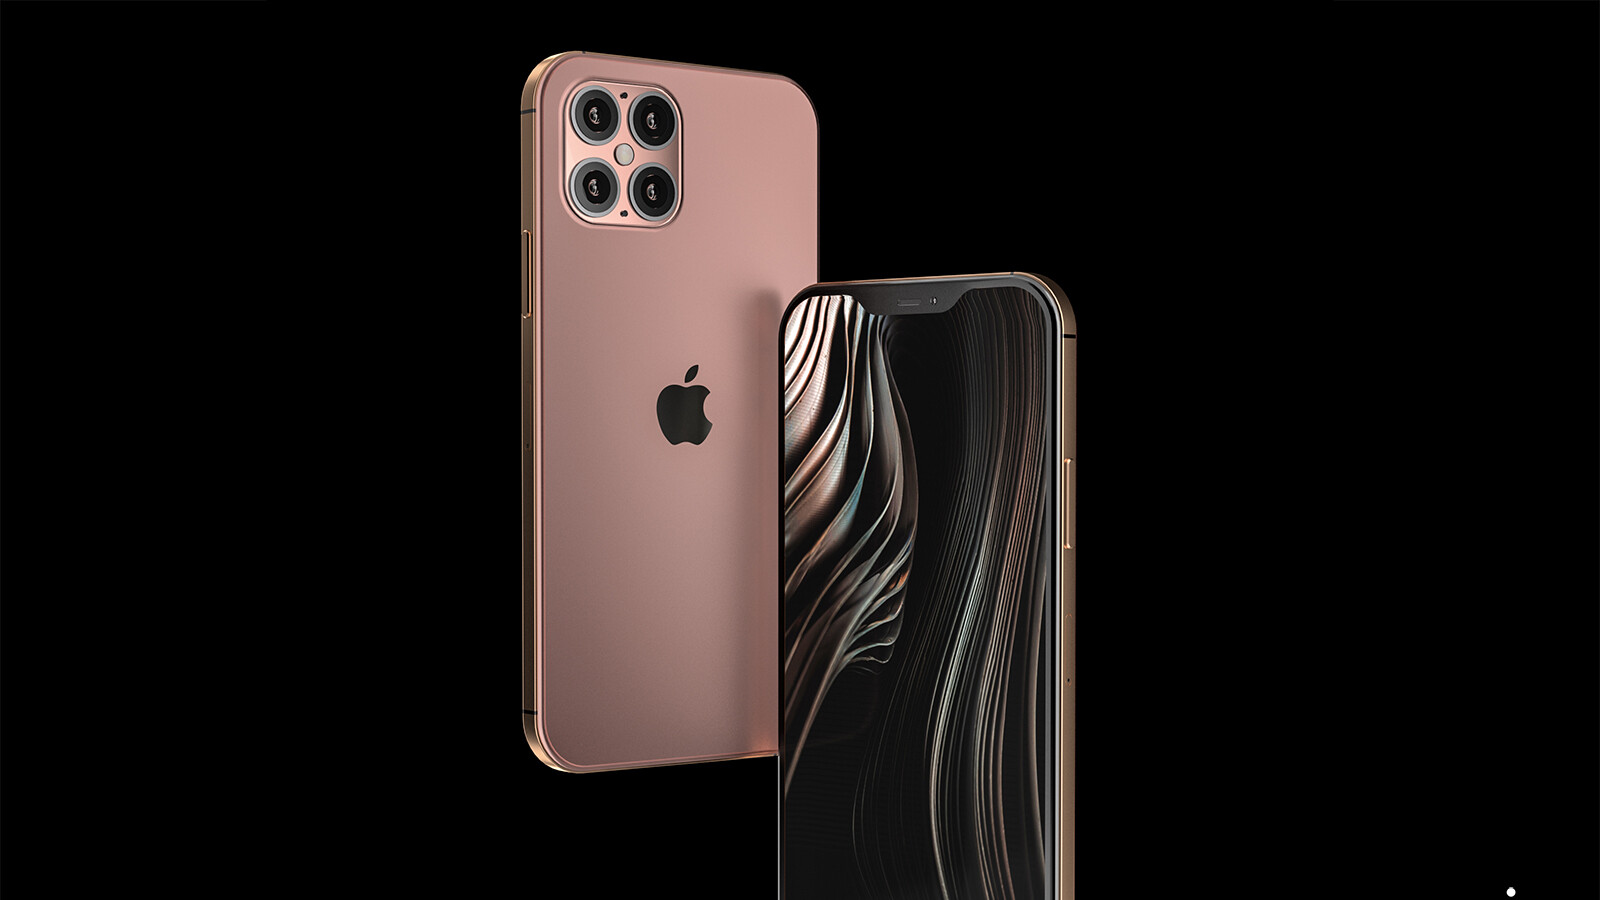 Apple's 5G iPhone 12 won't be pushed back to 2021, but ...